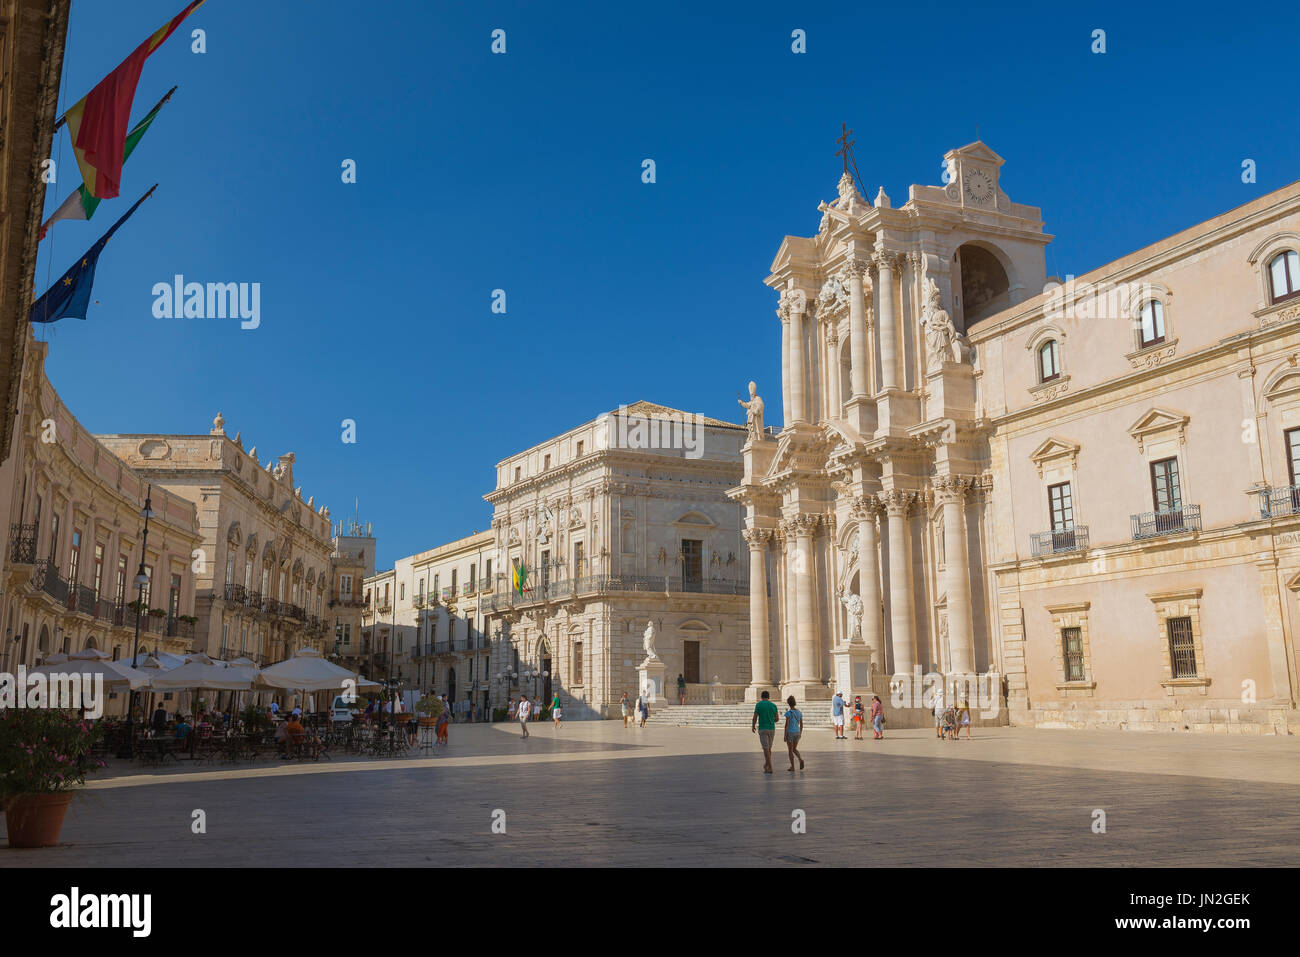 Syracuse Sicily piazza, the Piazza del Duomo on Ortigia island, Syracuse (Siracusa) Sicily. - Stock Image